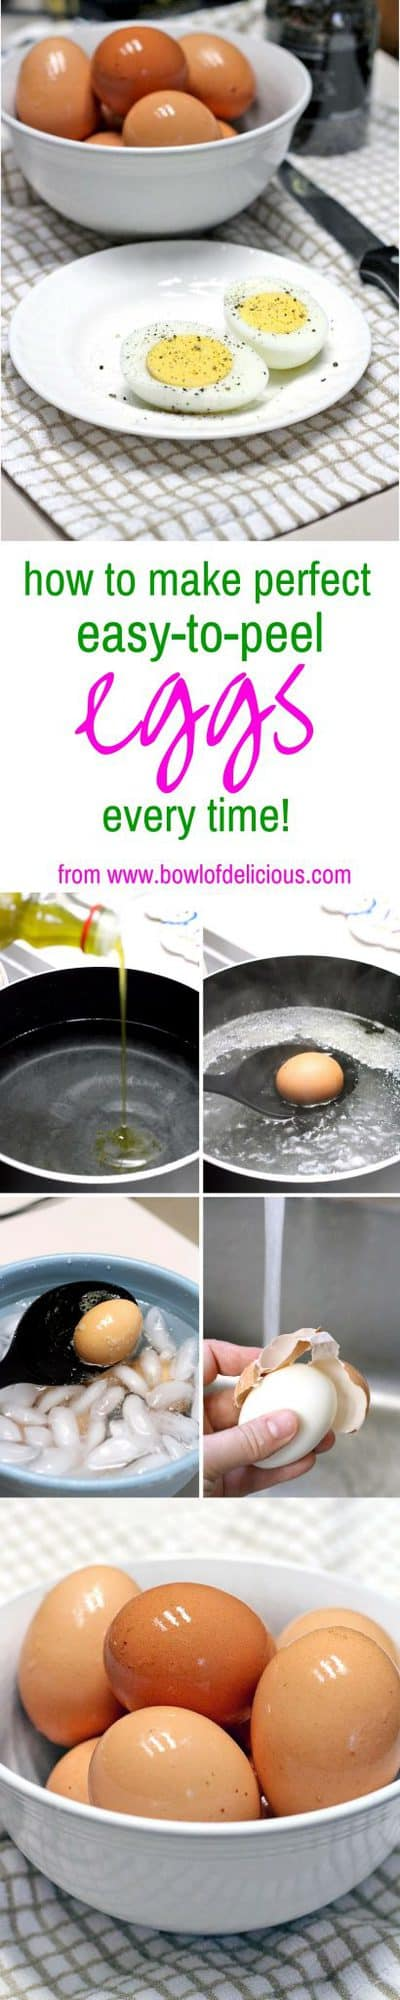 Adding olive oil to the water ensure perfect boiled eggs EVERY SINGLE TIME! Because the eggshells are porous, the oil seeps into the shell and creates a barrier. The eggshell just slides right off every time!